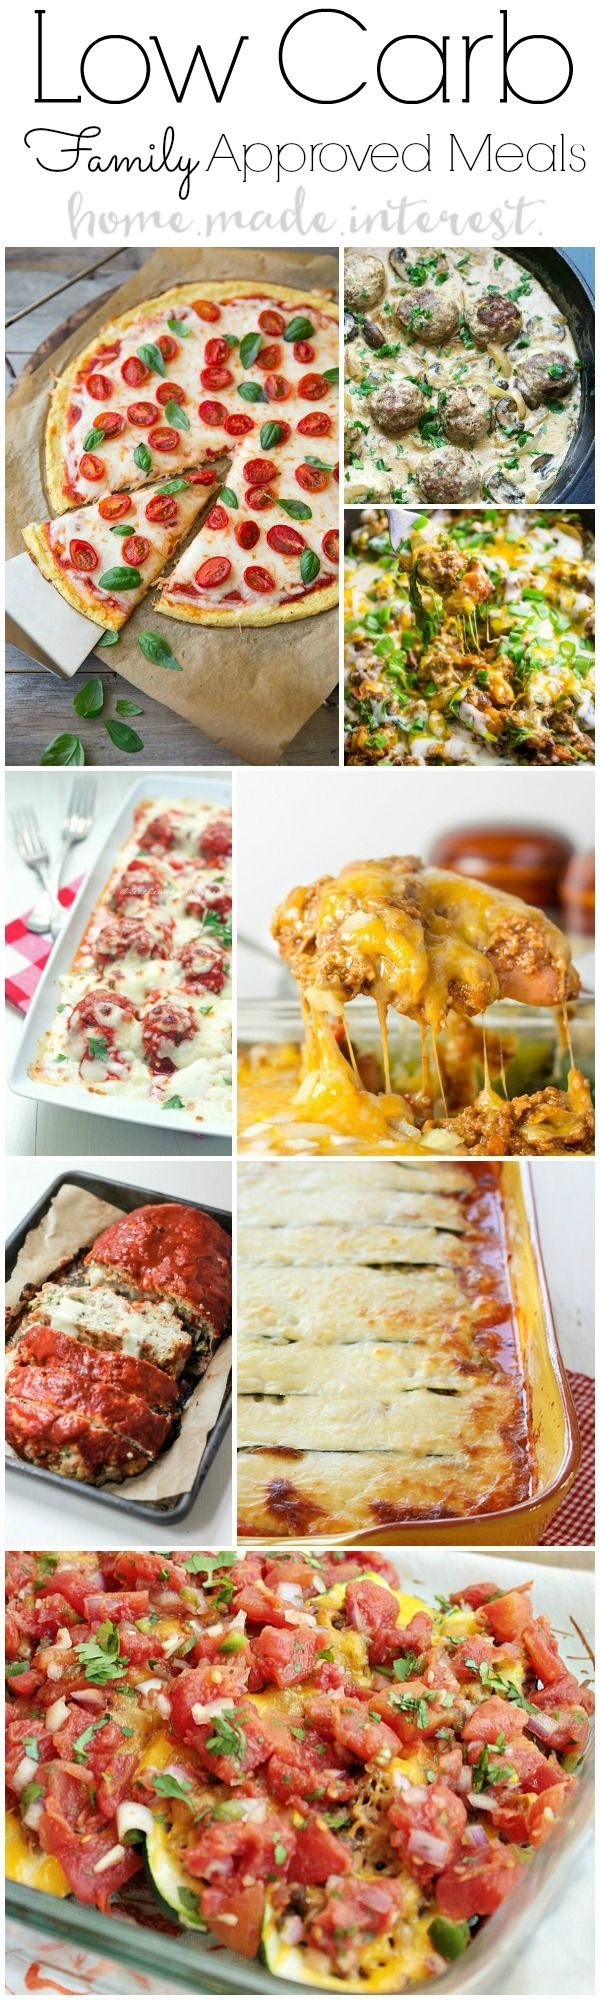 Low Carb dinner ideas that are kid and family approved. Healthy doesn't have to taste bad. Low carb diets and lifestyles are becoming very popular. Exercise and eat low is a great way to lose weight.Low carb dinner recipes for family will make meal time much easier!